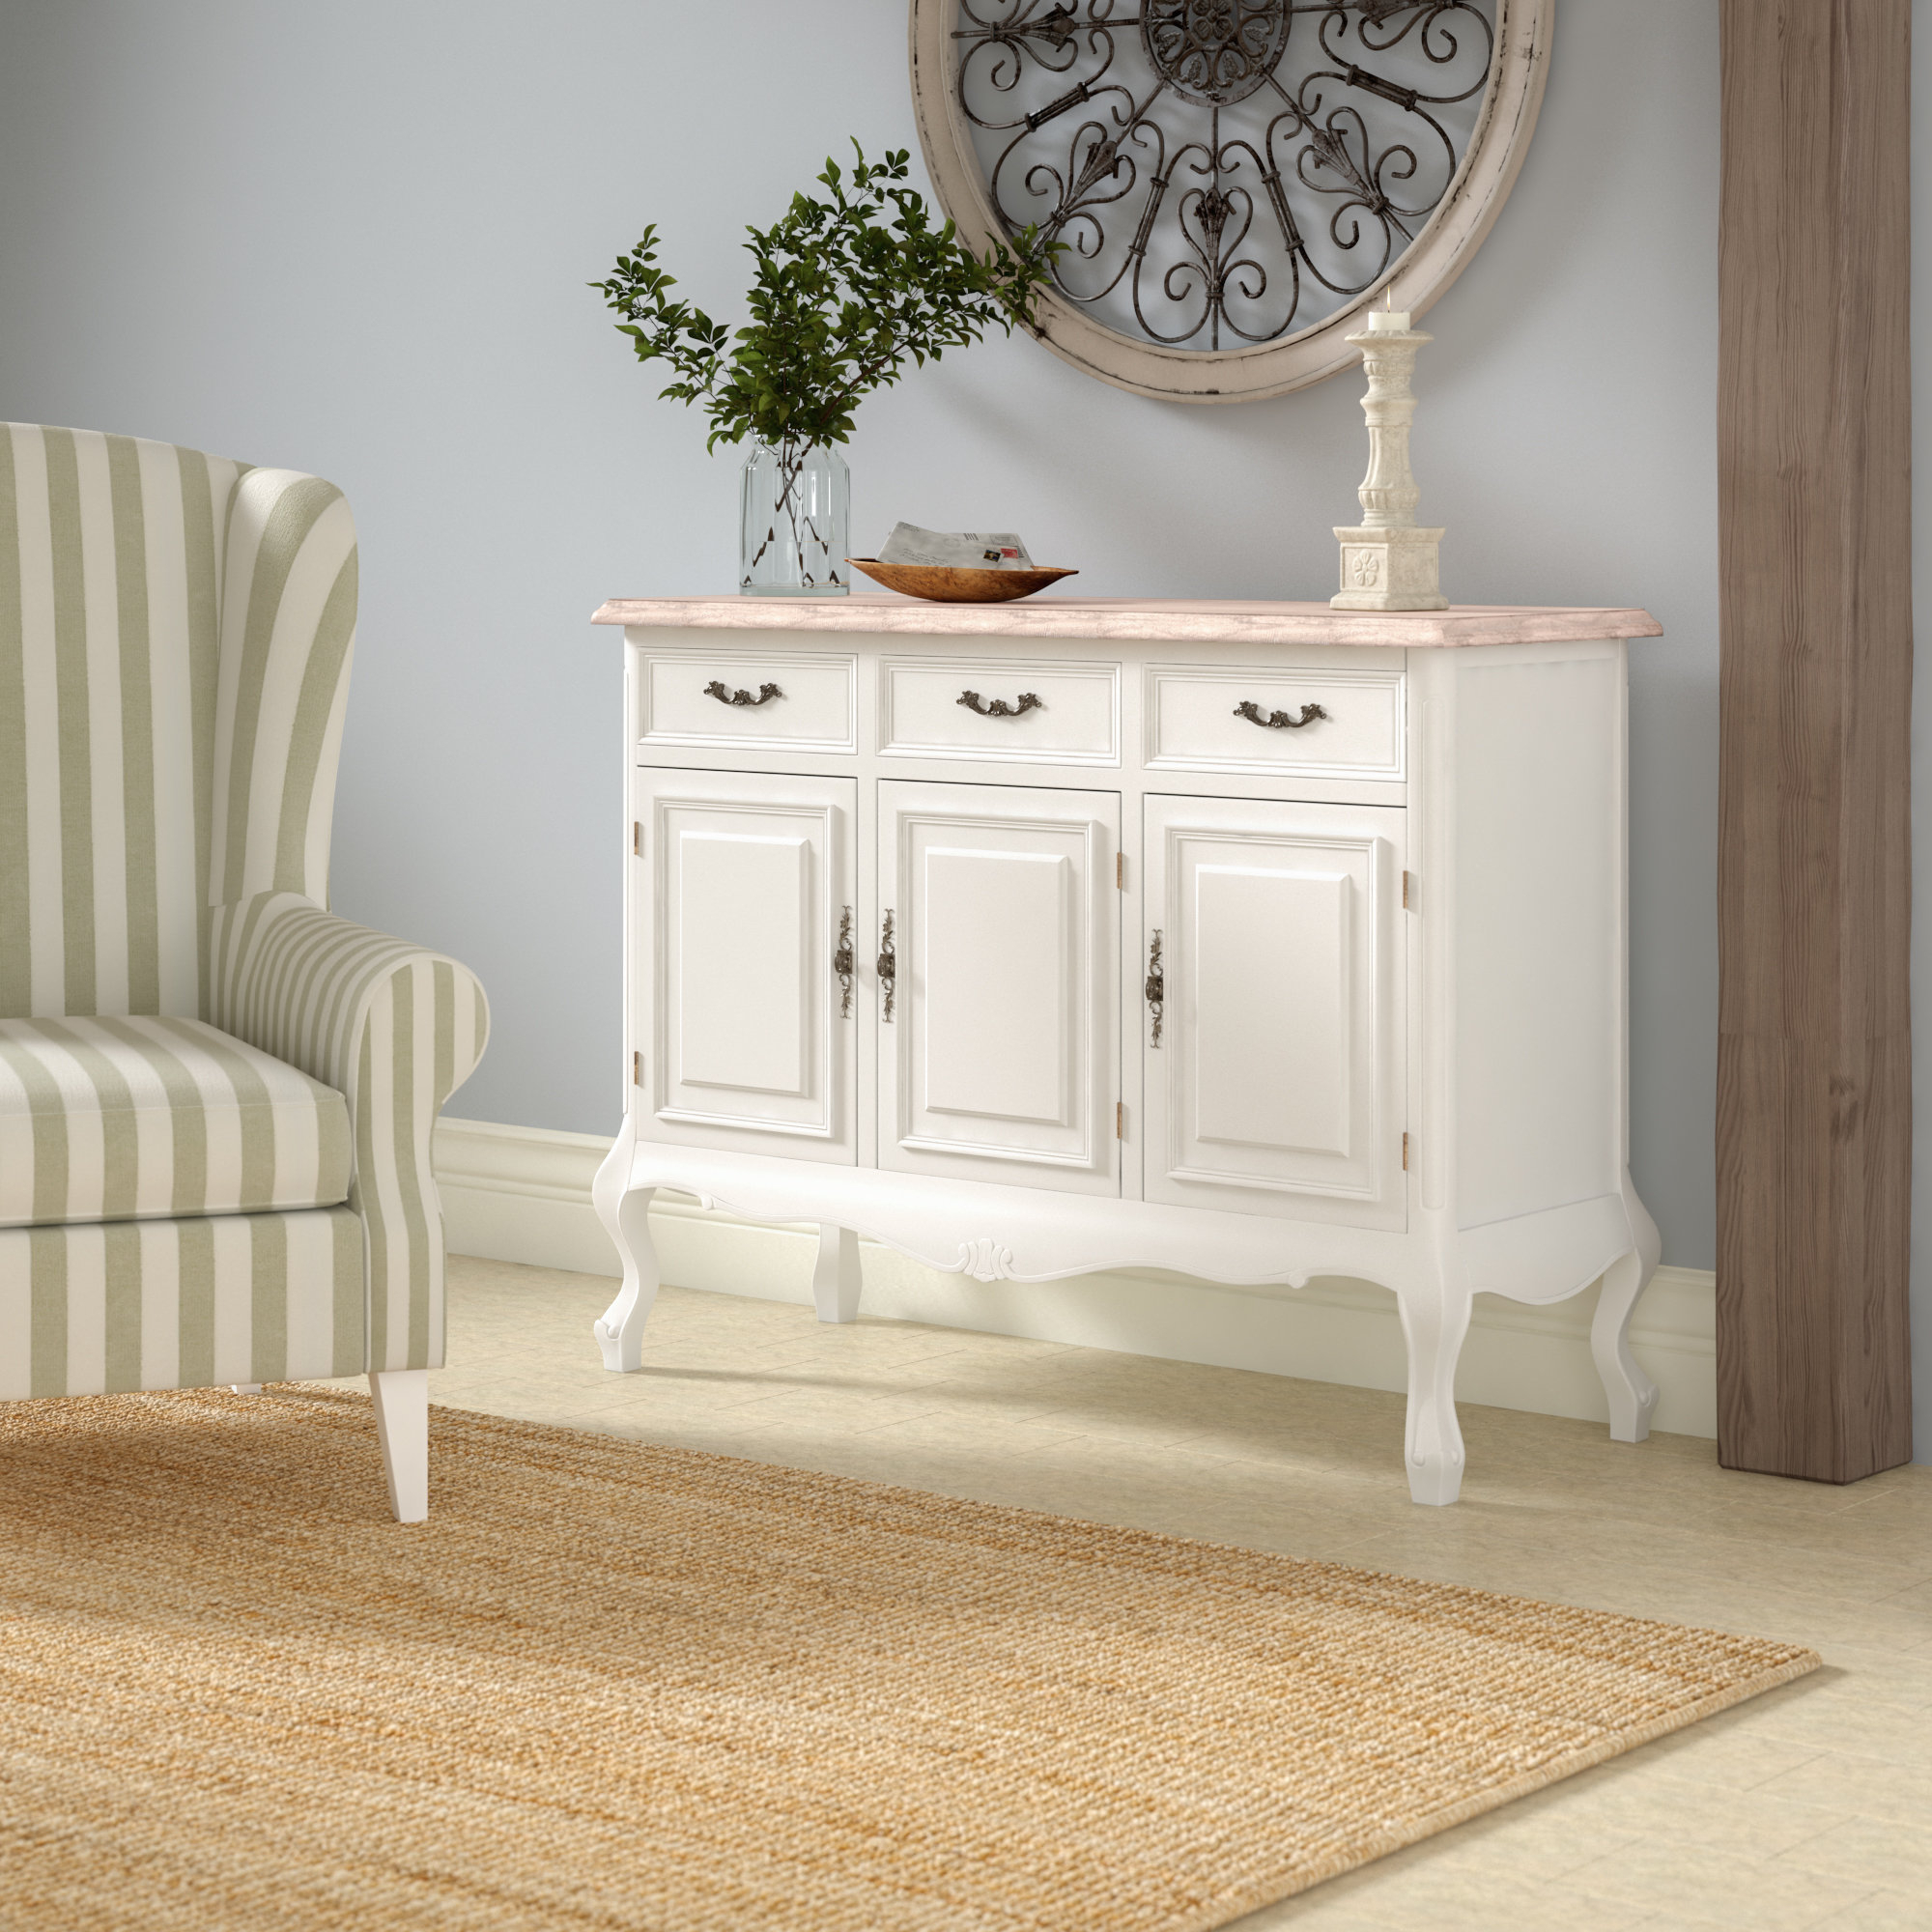 Sideboard Lola With Regard To 2018 Lola Sideboards (View 4 of 20)